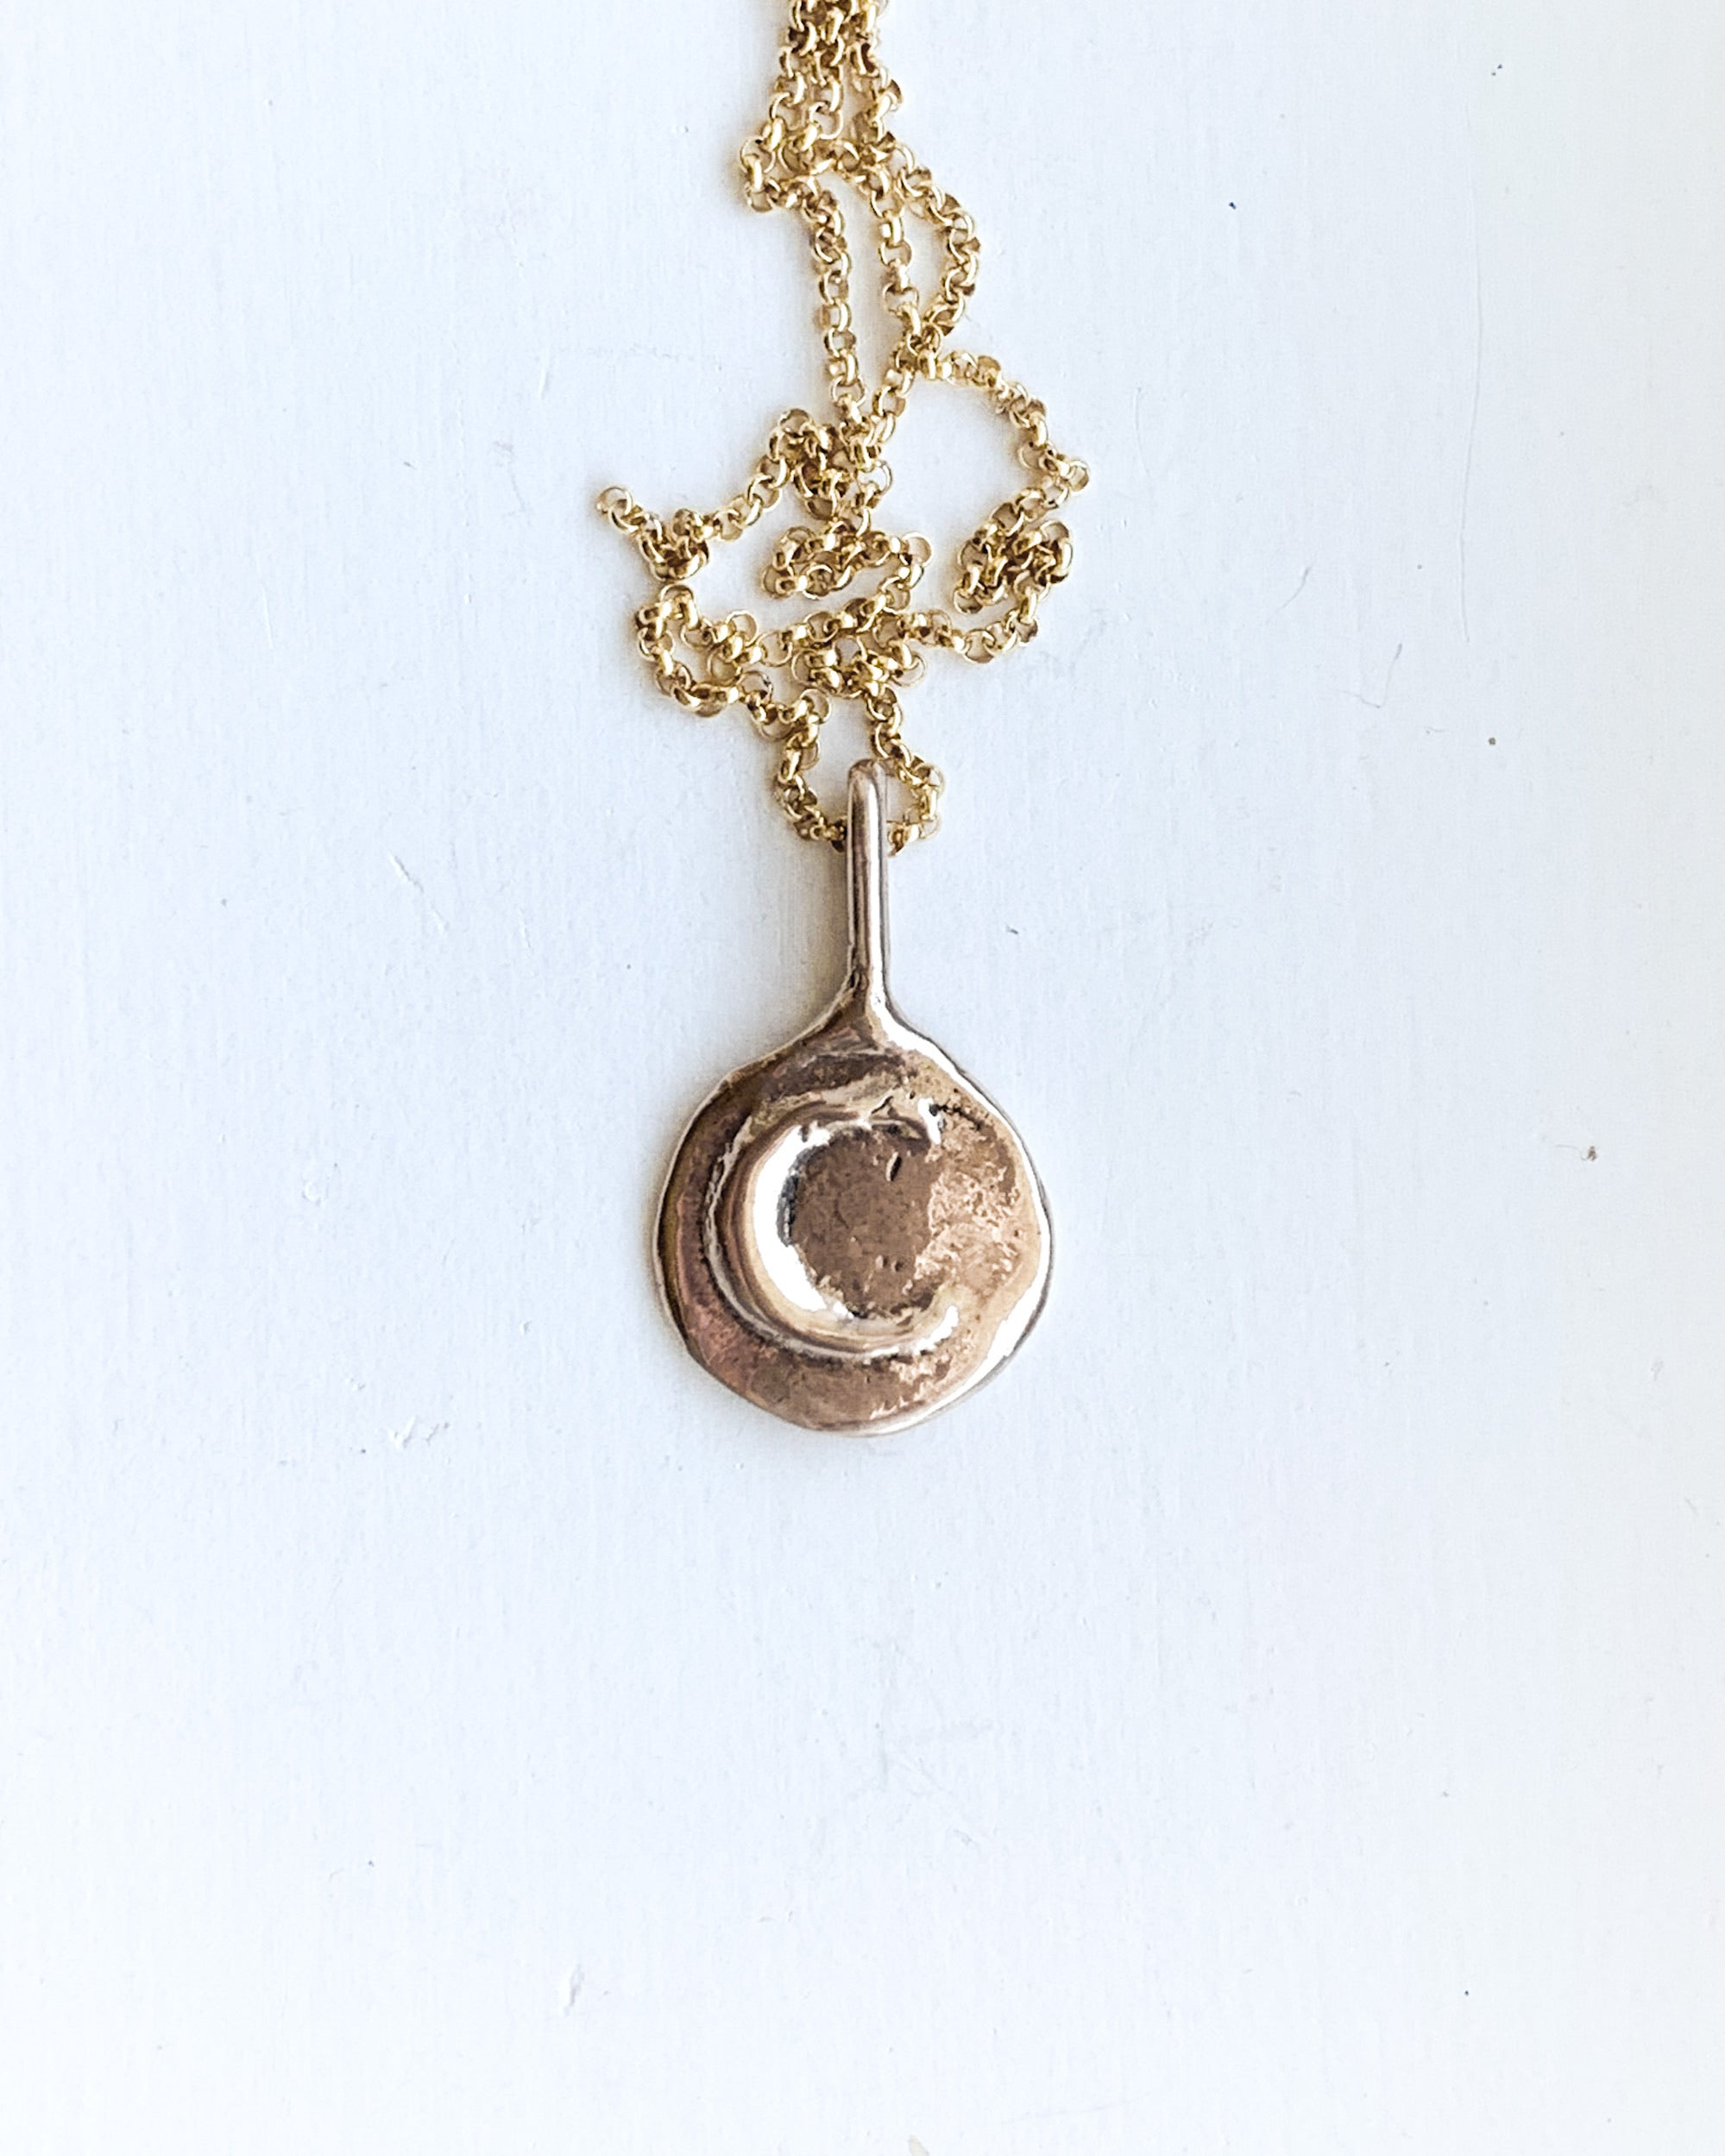 a hand formed bronze moon pendant with a gold chain on a white backgroud